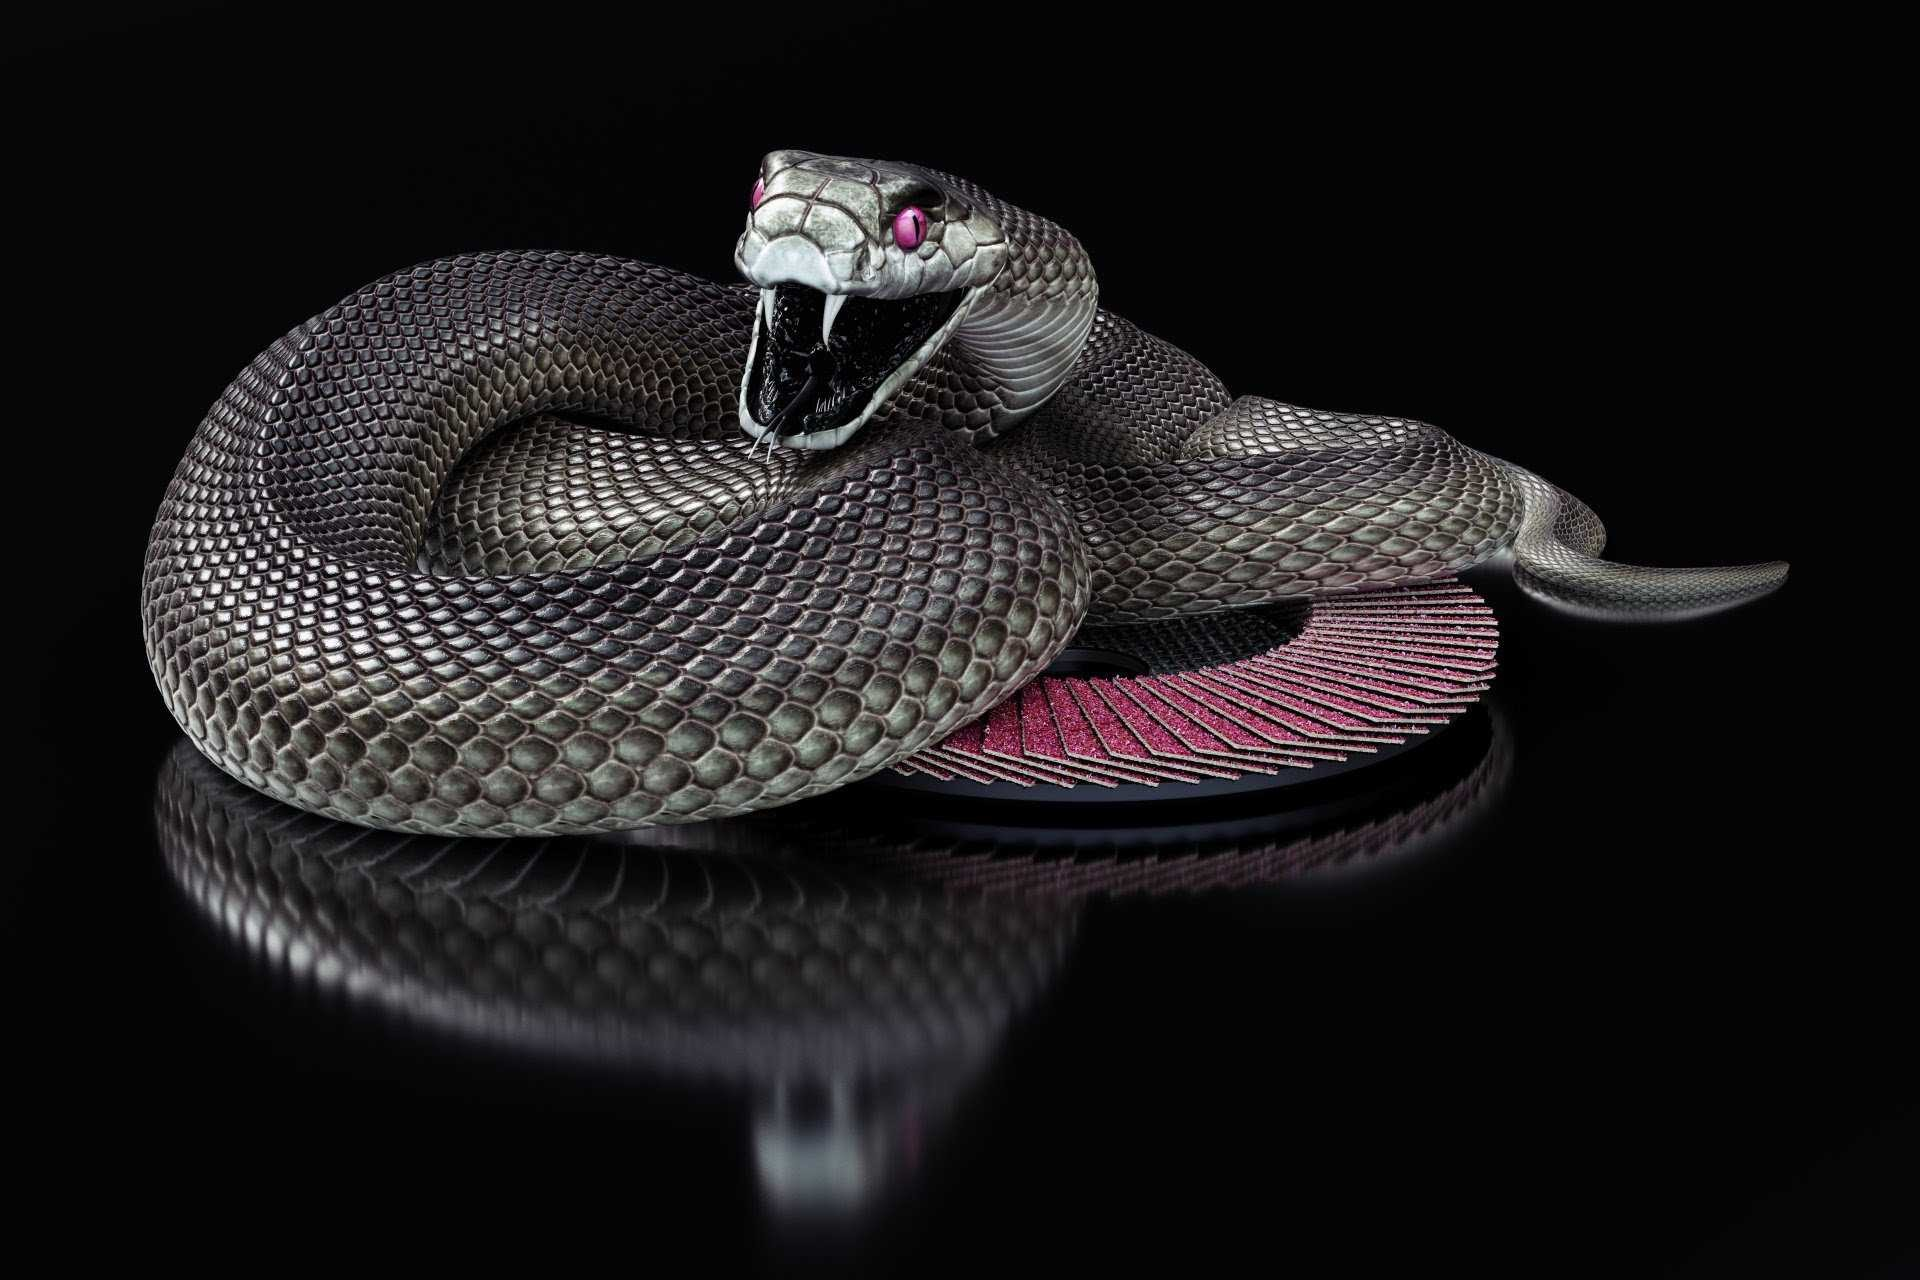 Res: 1920x1280, Black Mamba Snake Wallpaper HD Collection Of Black Snake